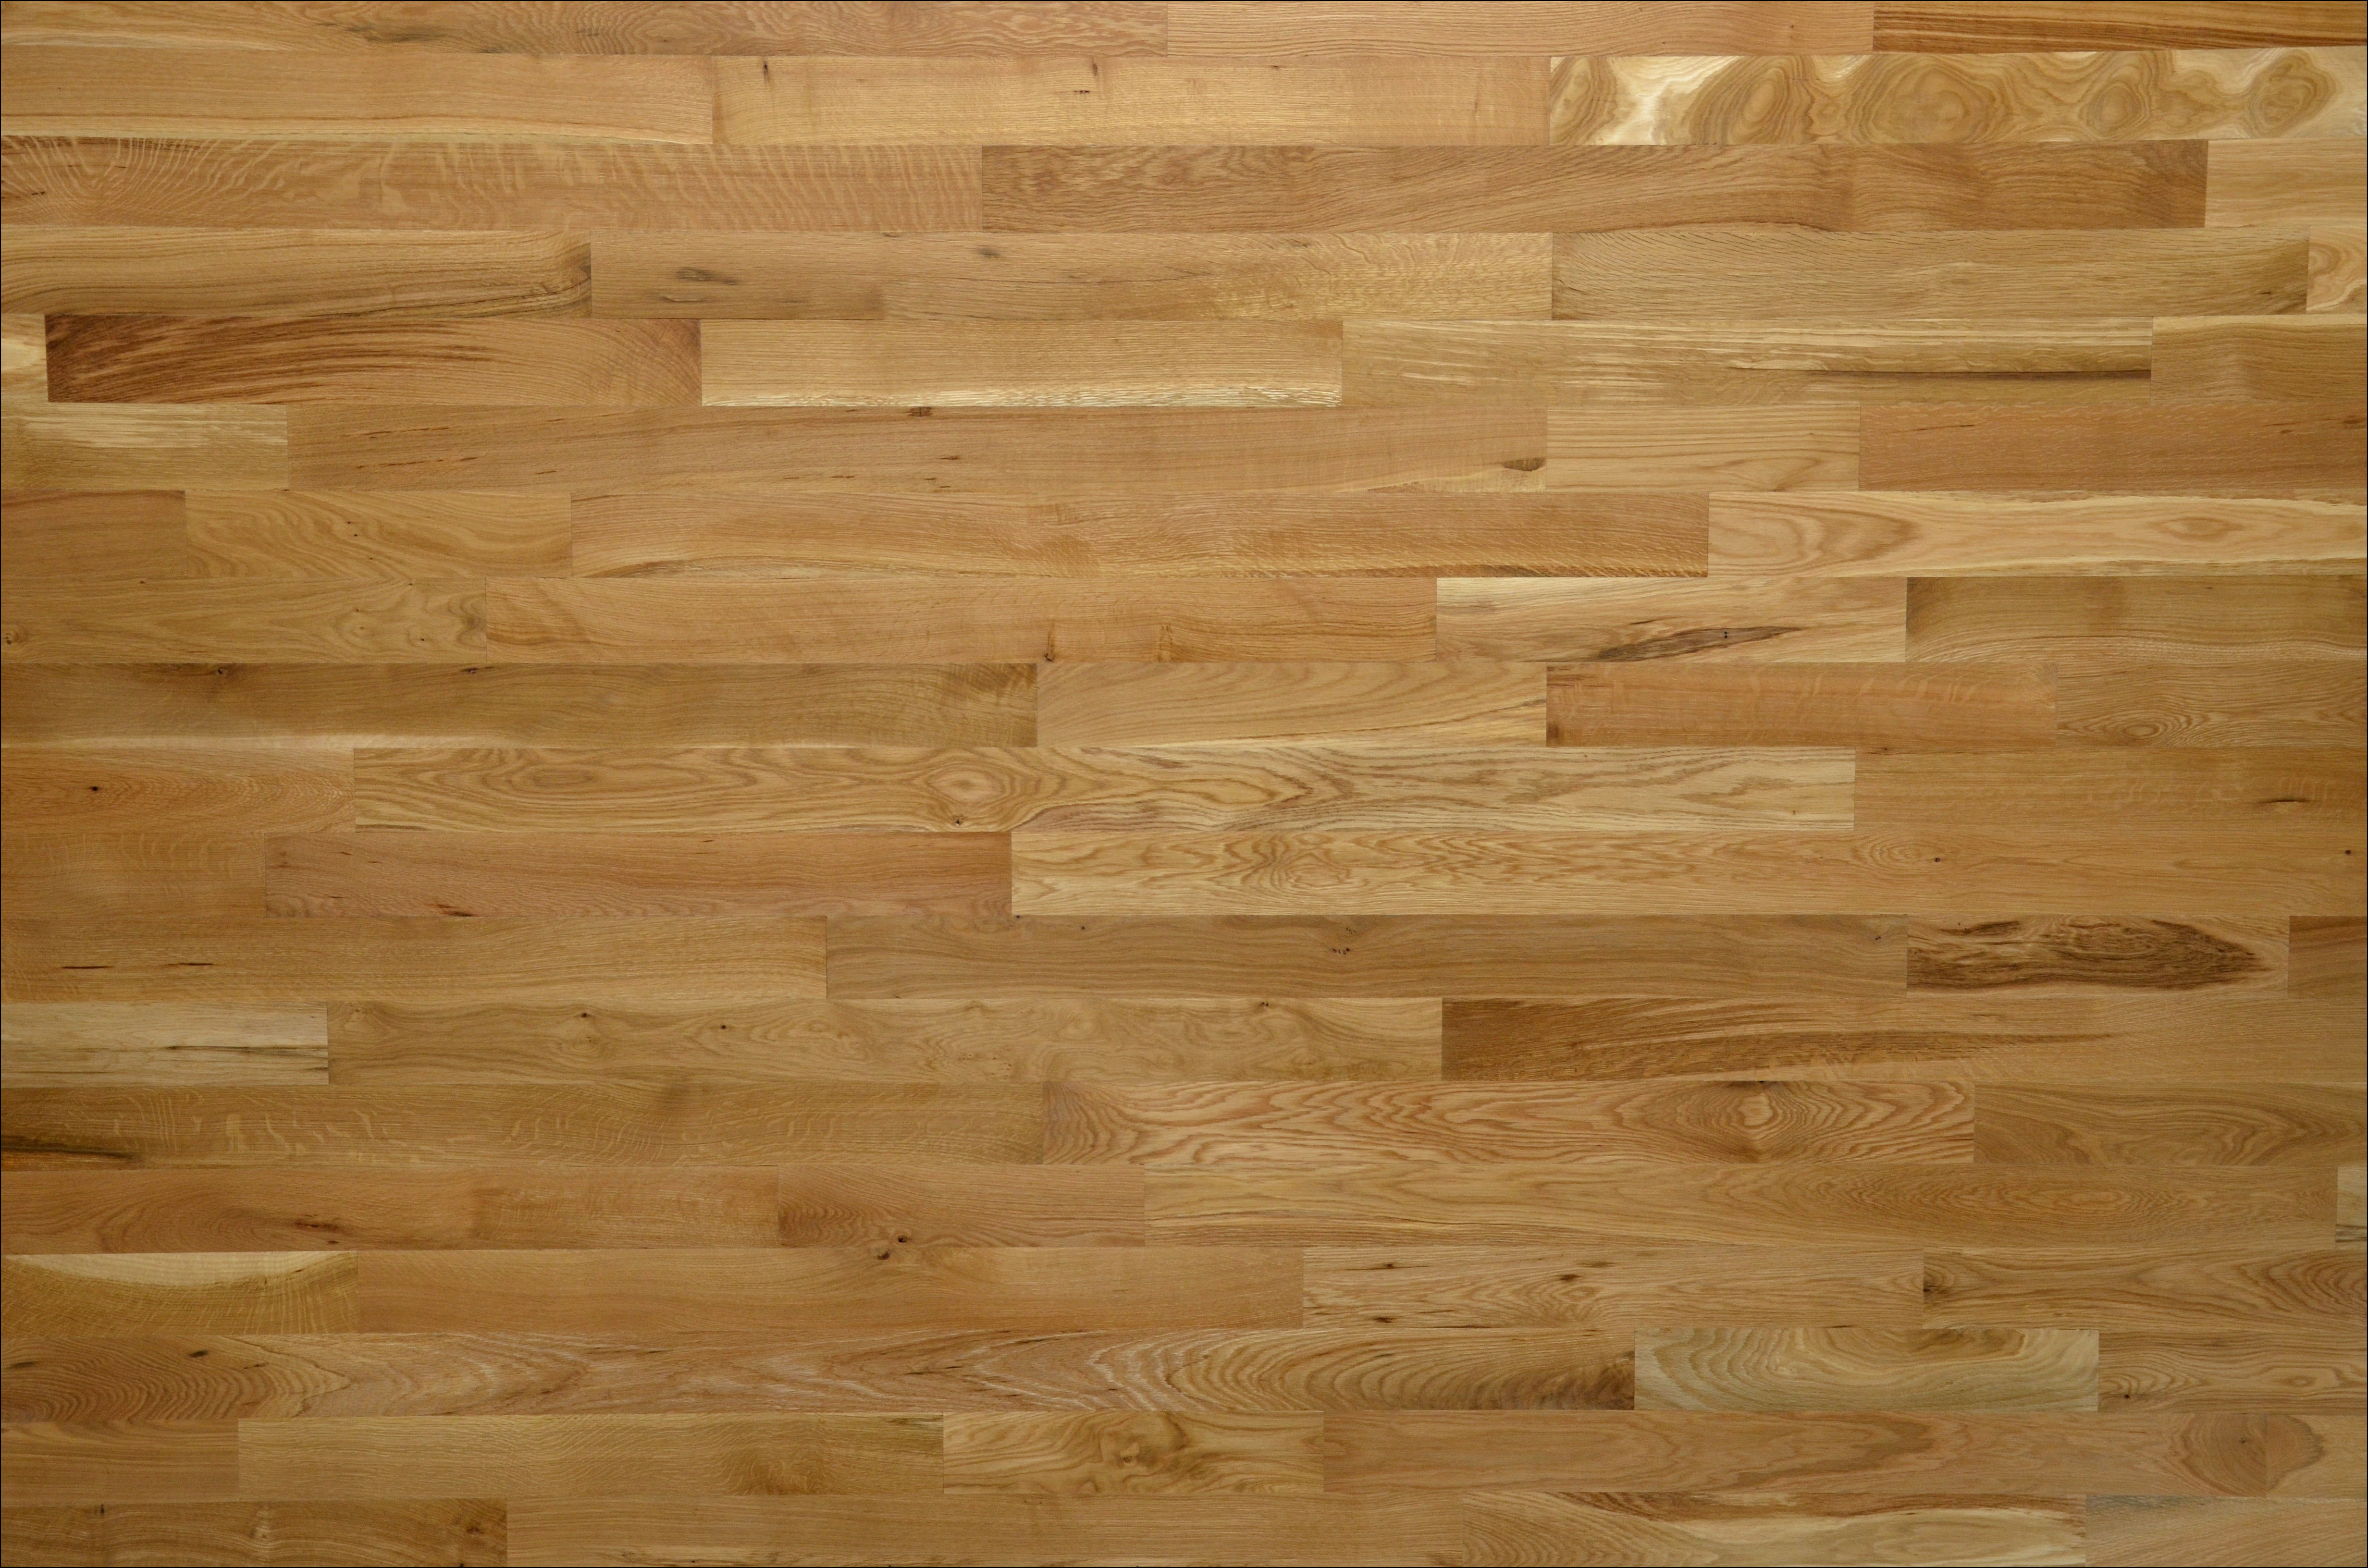 Red Oak Hardwood Flooring Unfinished Of 2 White Oak Flooring Unfinished Stock 2 Mon Red Oak Lacrosse Throughout 2 White Oak Flooring Unfinished Stock 2 Mon Red Oak Lacrosse Flooring